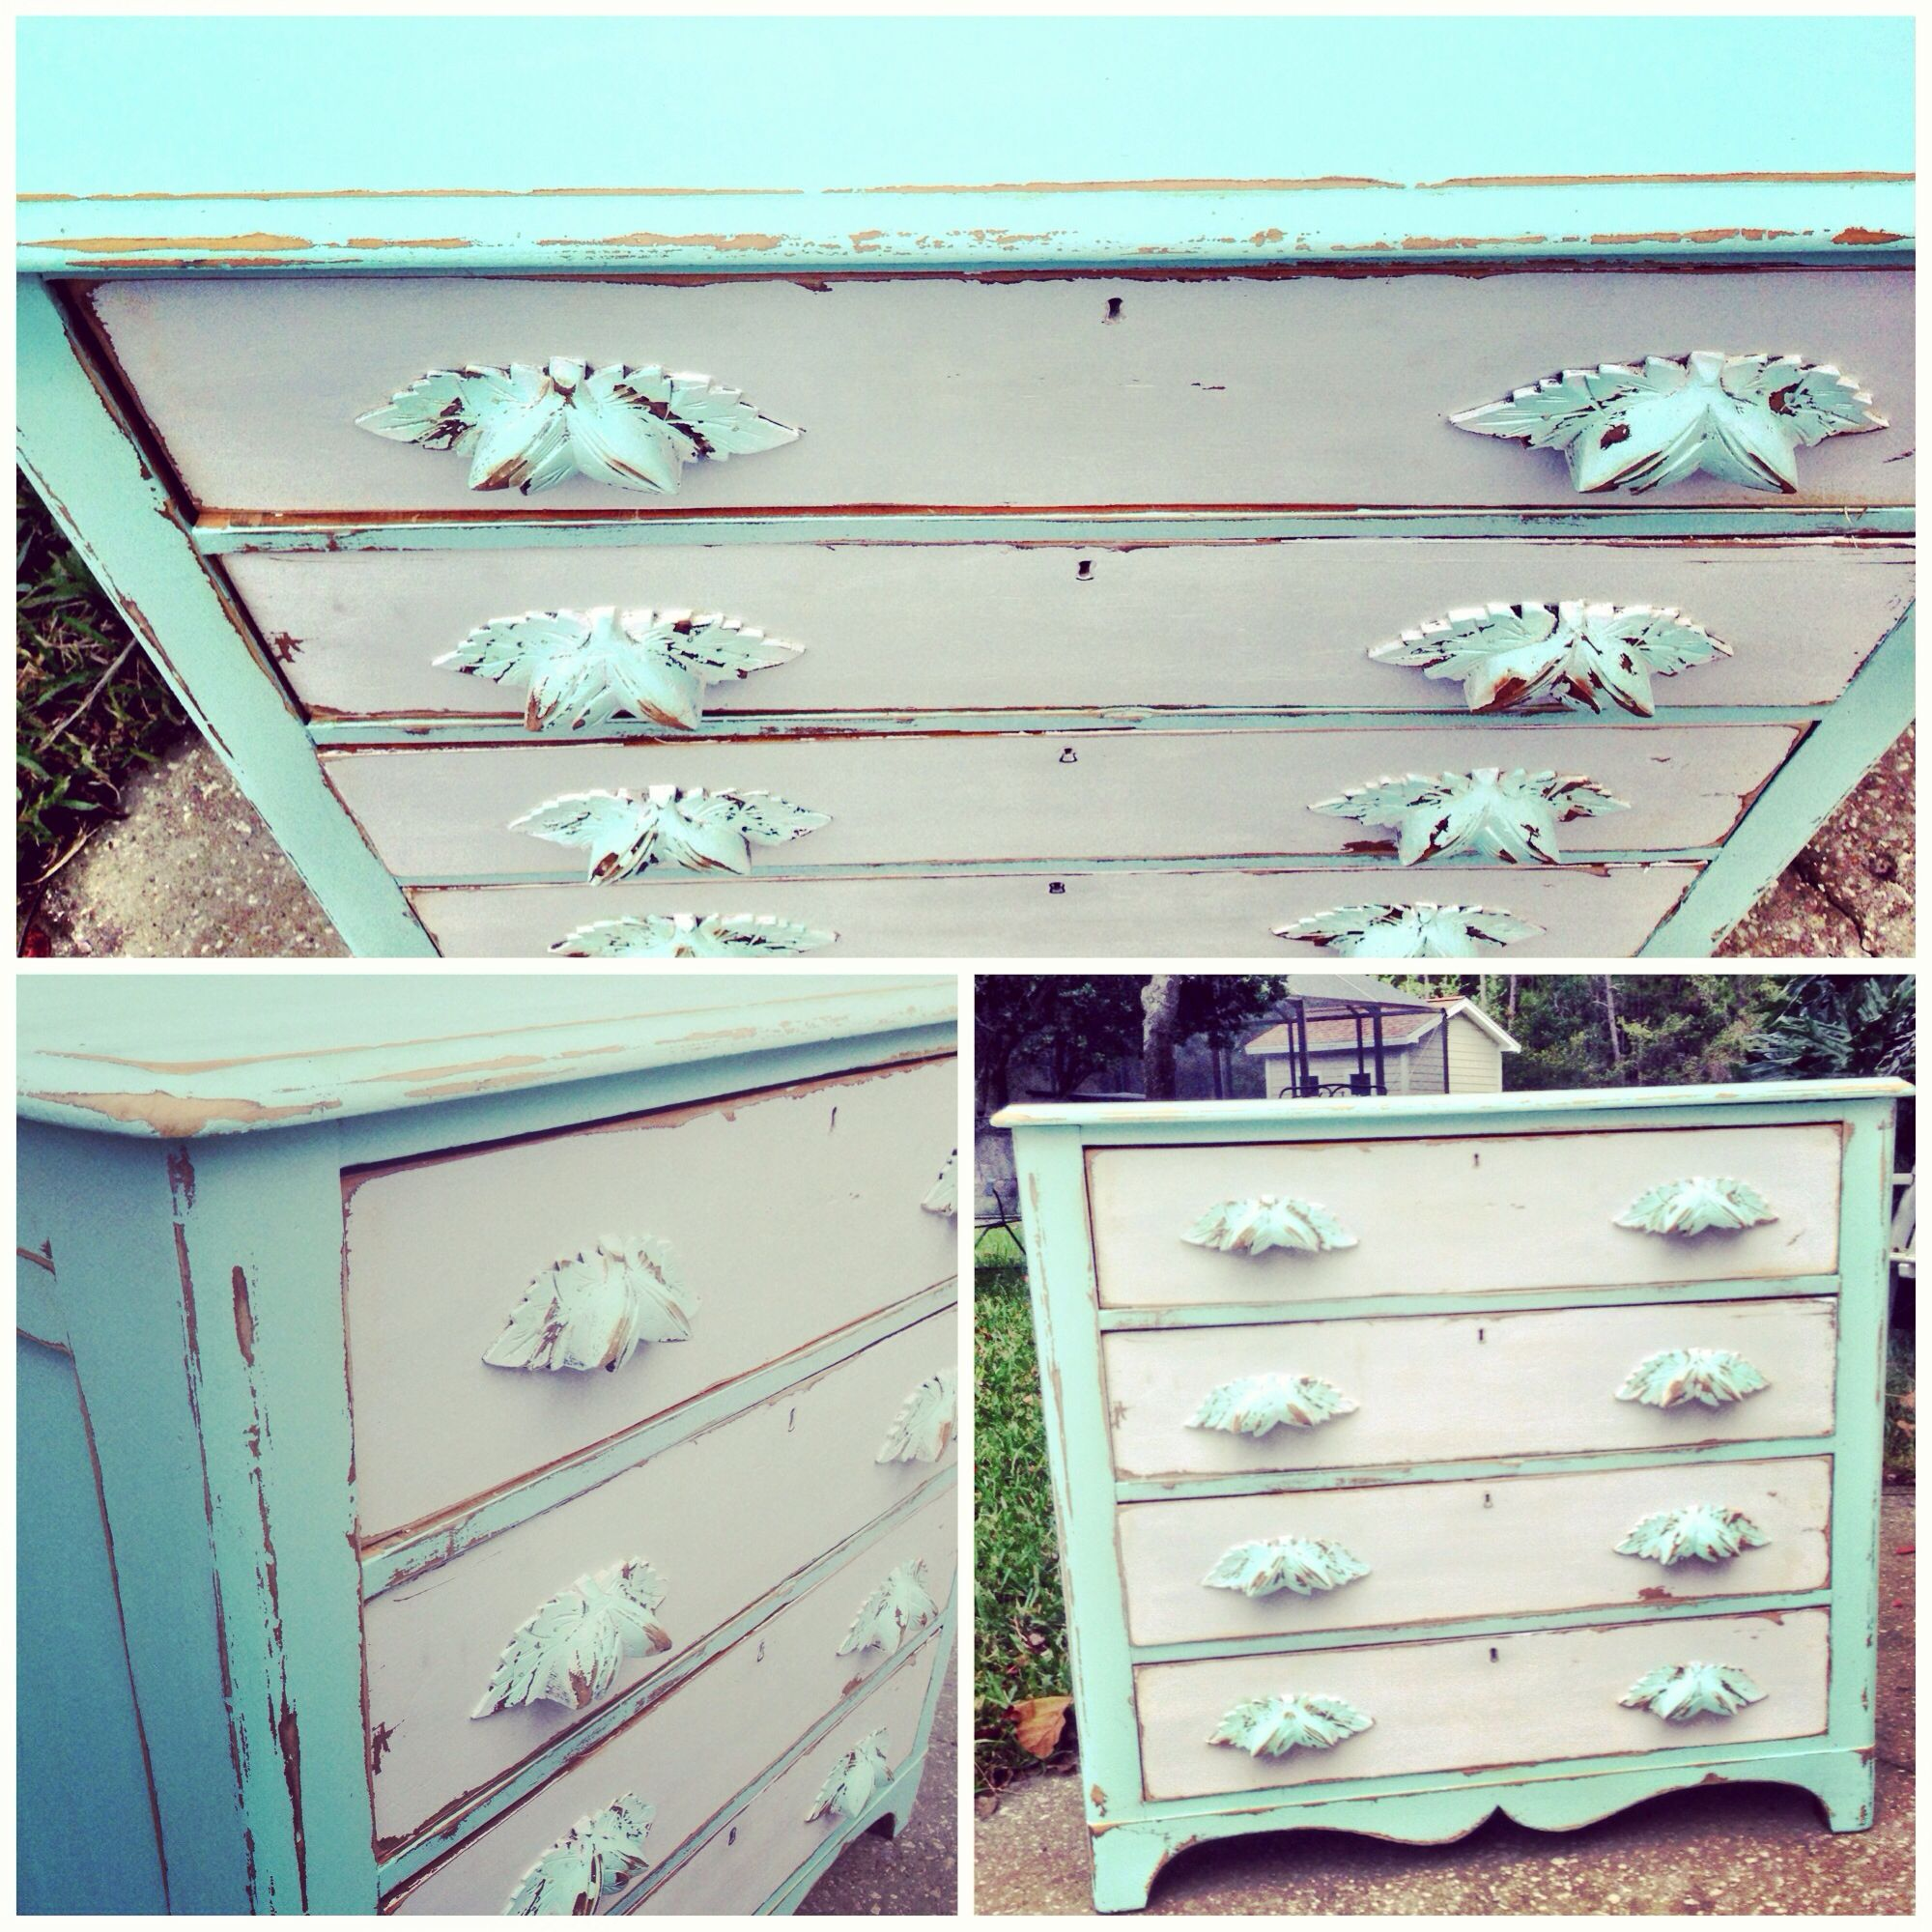 Mint White Vintage Dresser Distressed Wood Shabby Chic Hand Painted Furniture Cottage Style Beachy Keyhole Drawers Detailed Pulls